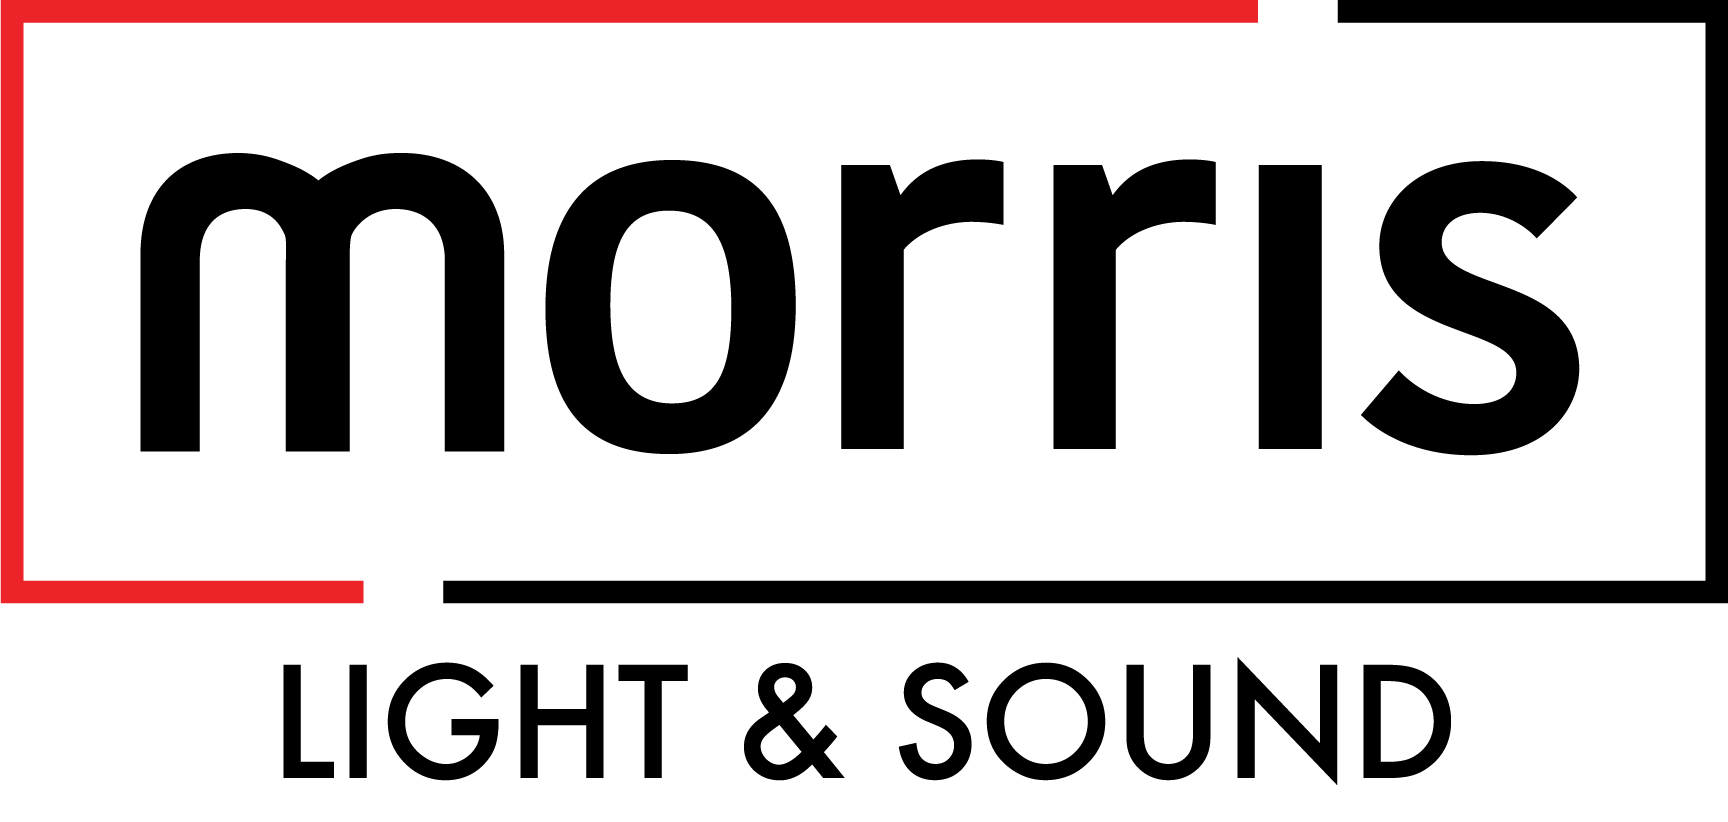 Morris_Light & Sound_logo.png